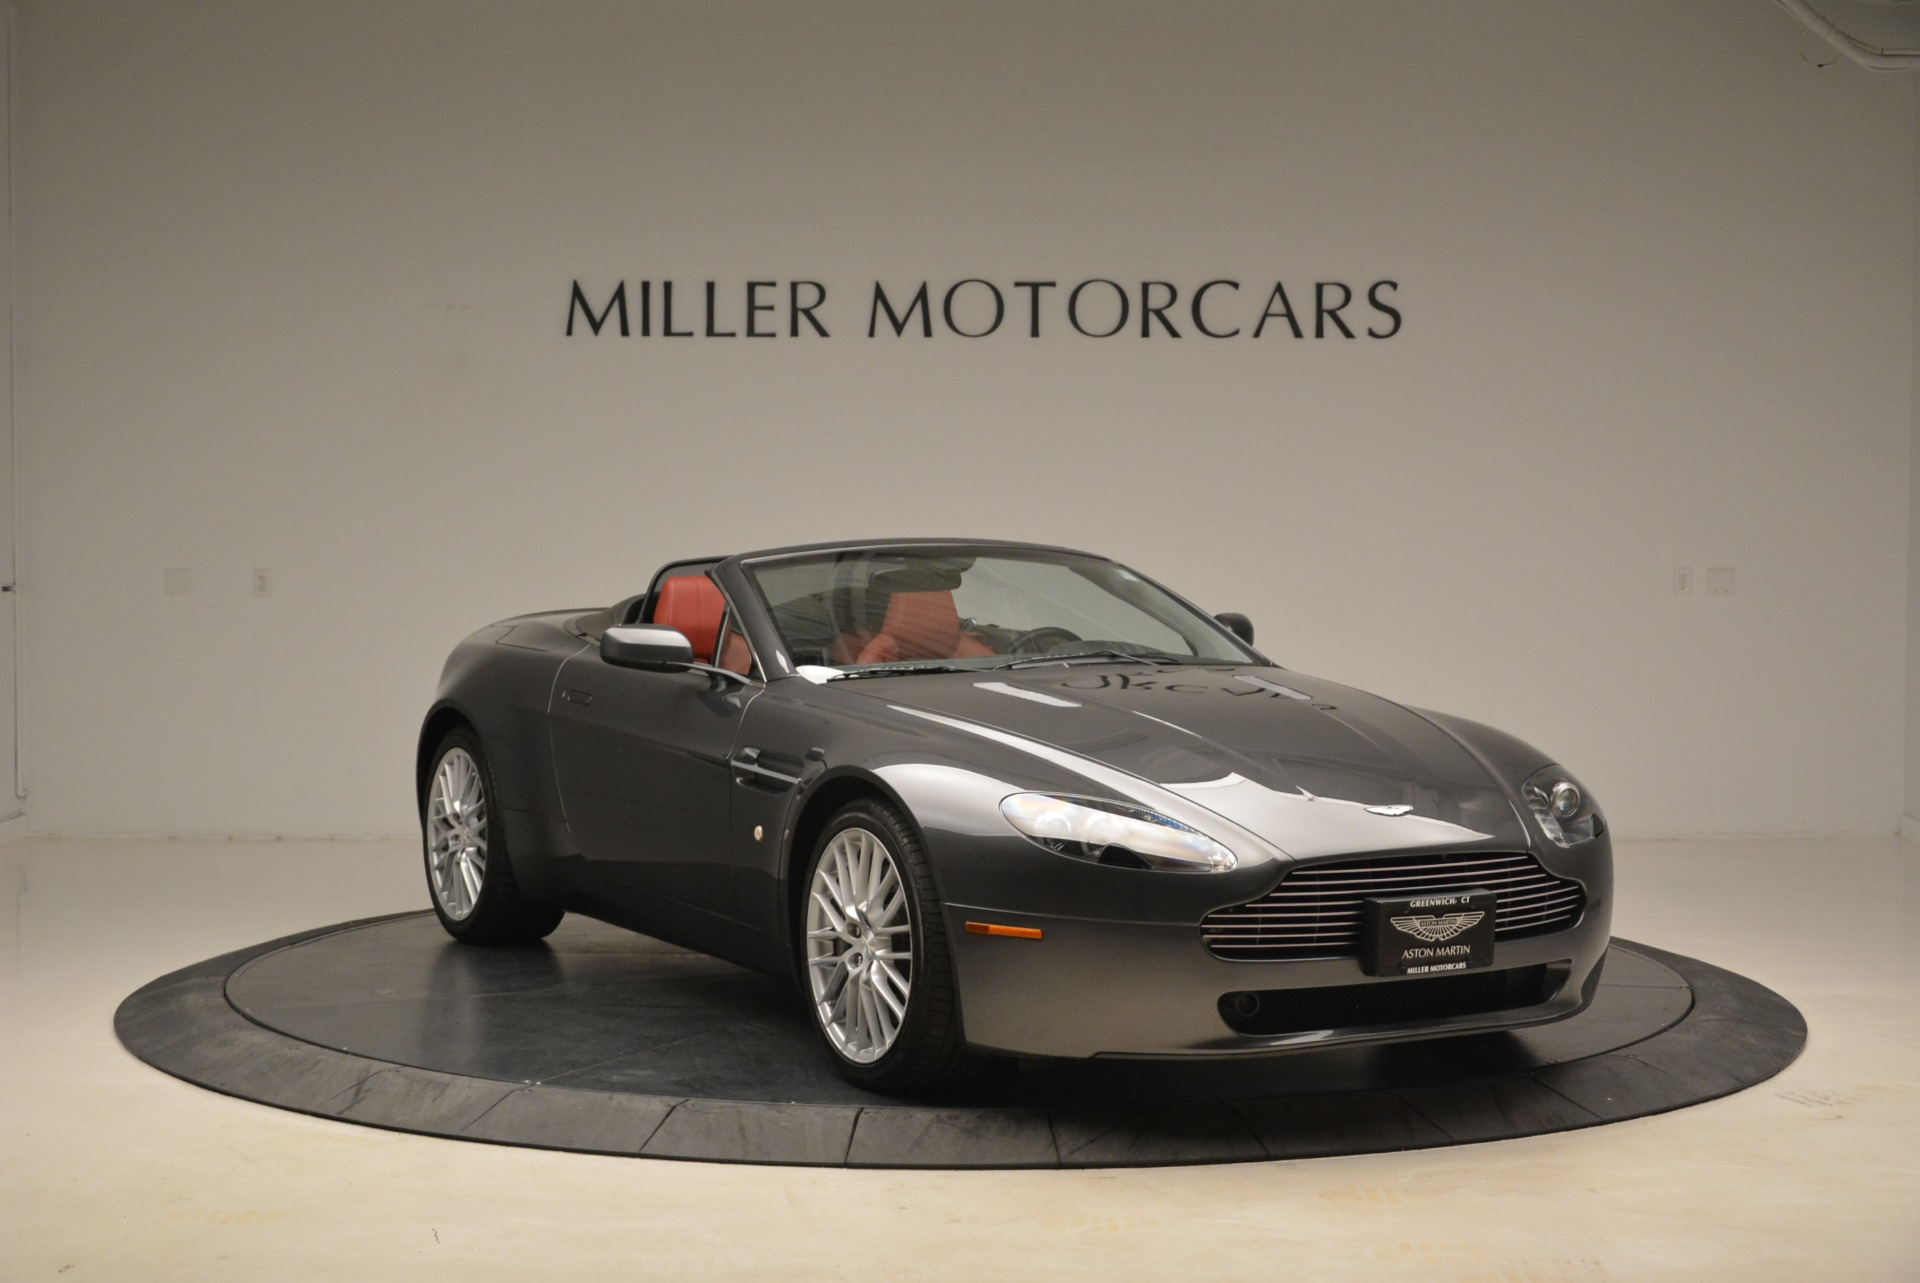 Used 2009 Aston Martin V8 Vantage Roadster For Sale In Greenwich, CT 2123_p11